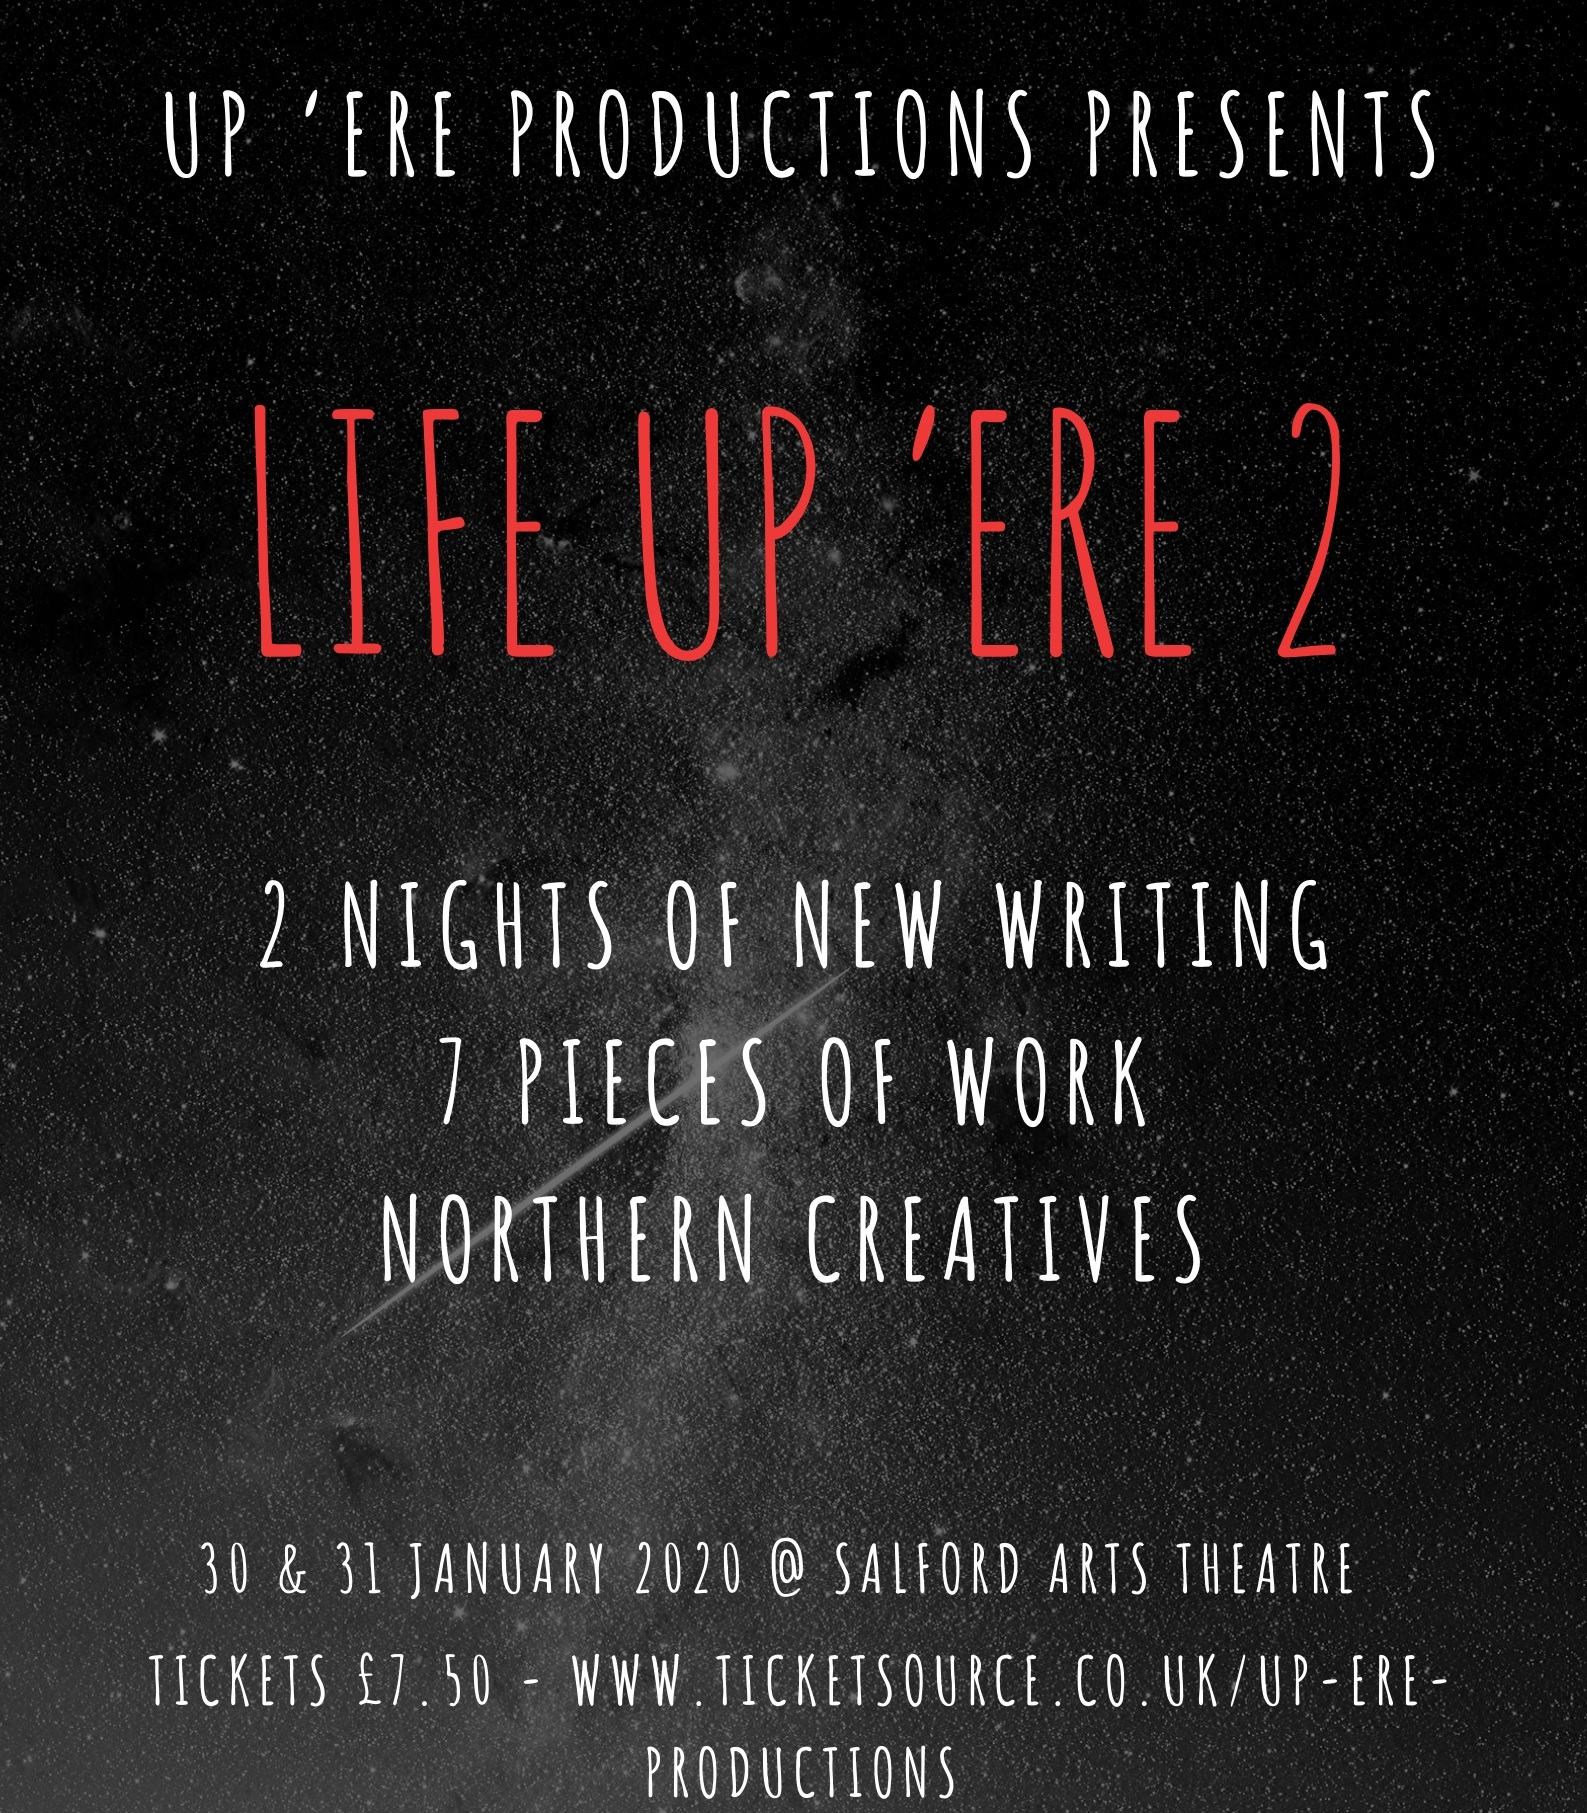 UP' ERE PRODUCTIONS  - LIFE UP'ERE 2  AT SALFORD ARTS THEATRE